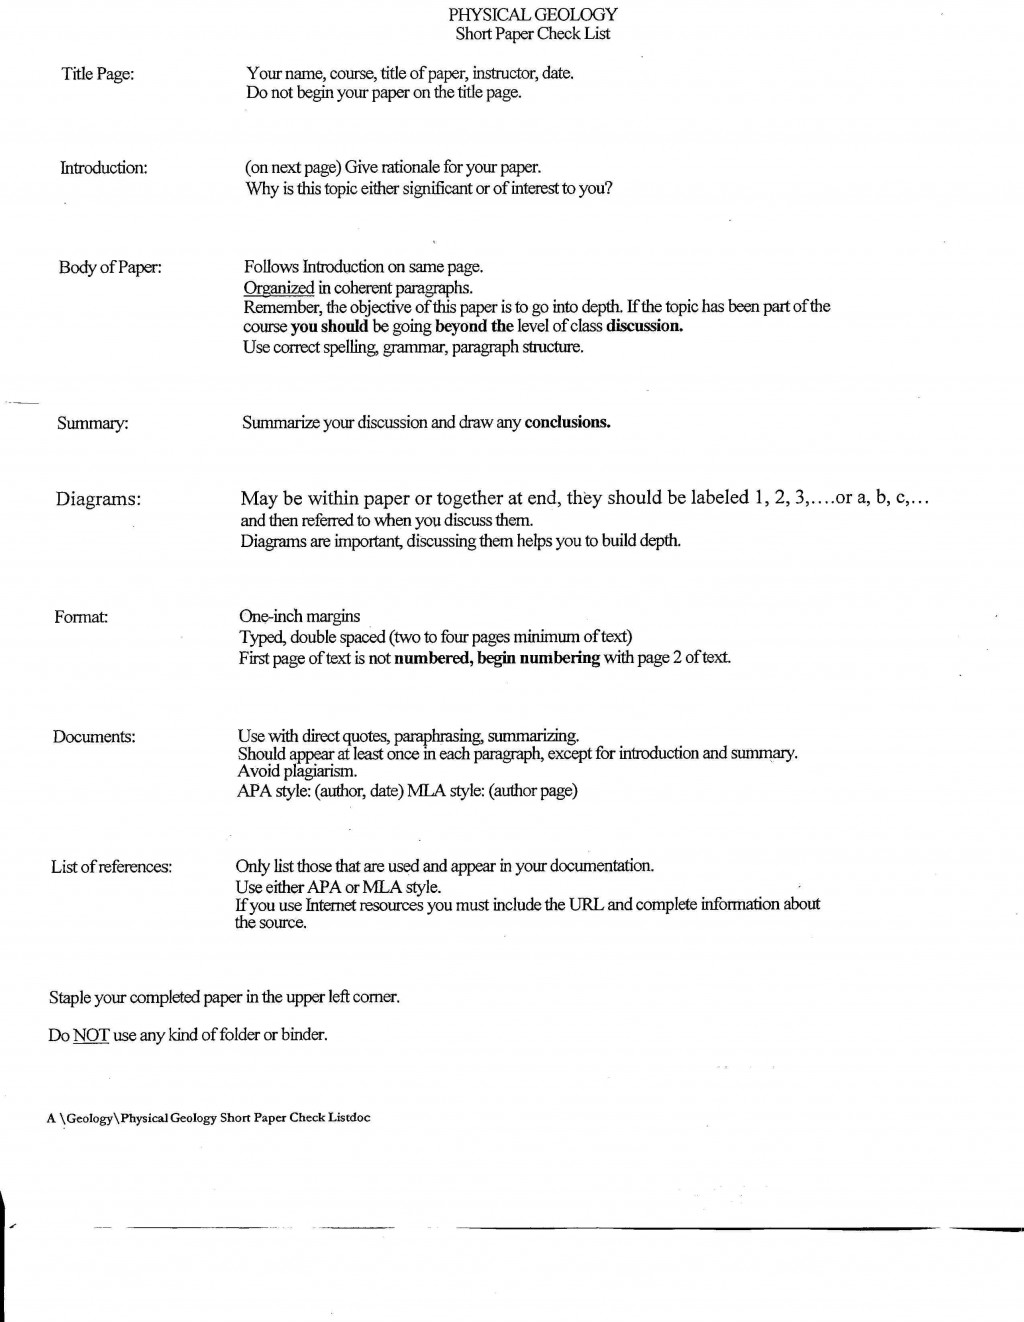 018 Short Checklist How To Do Research Top A Paper On Person Book Make Title Page Large